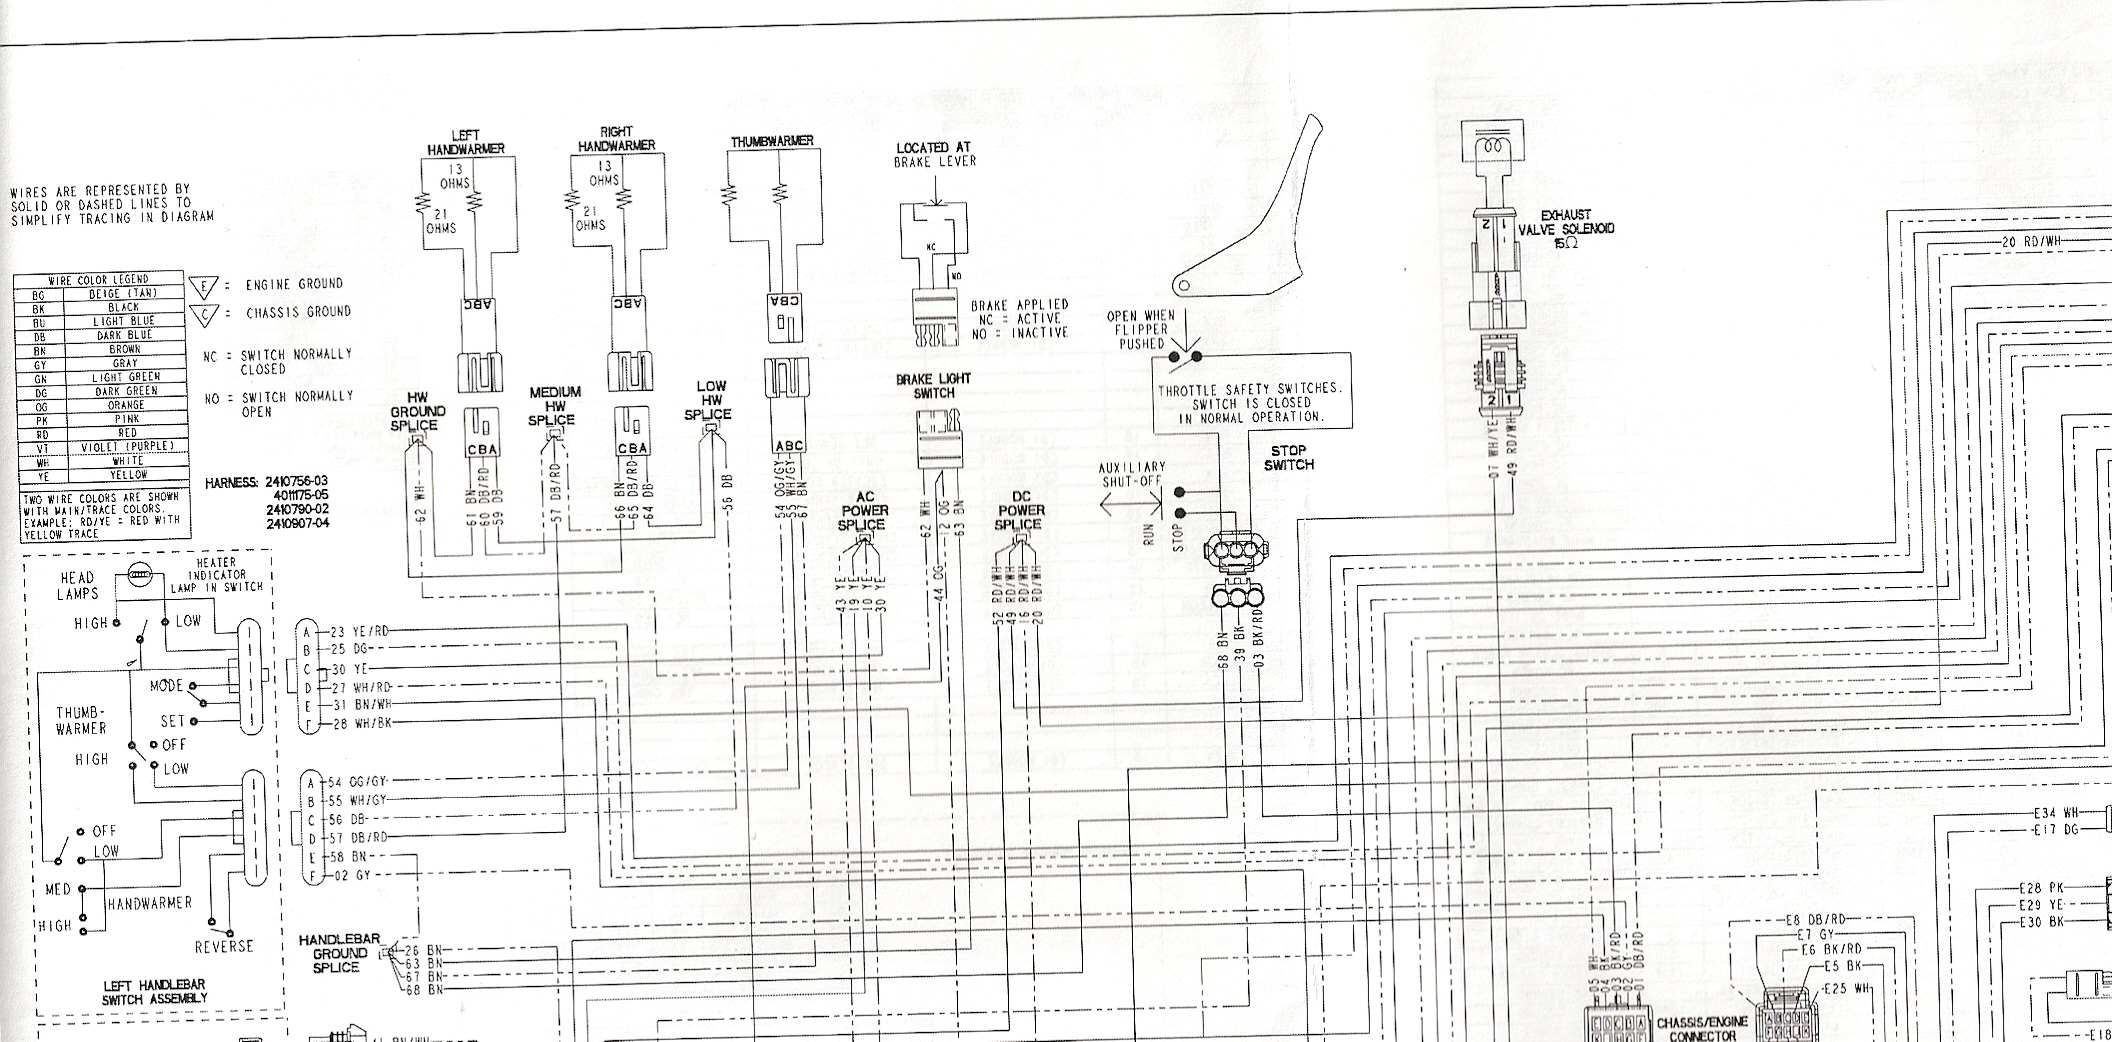 Wiring Diagram Polaris Ranger 800. Diagrams. Wiring